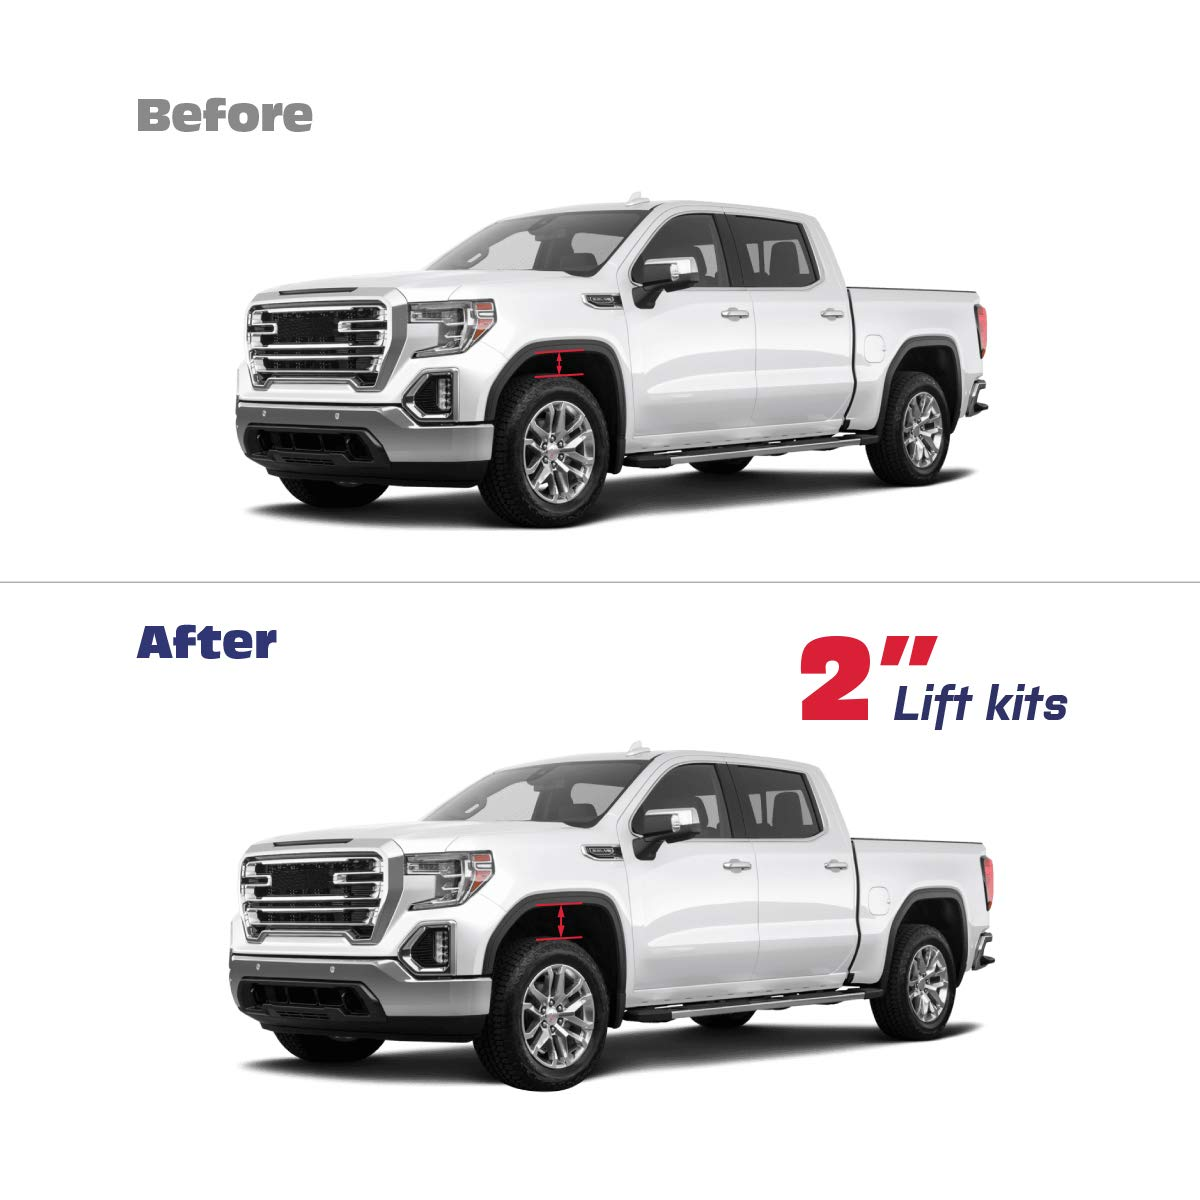 """1 Year Warranty KSP Forged Lift Kit 2 Front Lift Kit For 2007-2019 Silverado Sierra 1500 Front Strut Spacers Raise the Front Of Your Chevy 2 Inch 2/"""" Leveling Lift Kit for Silverado Sierra 1500"""